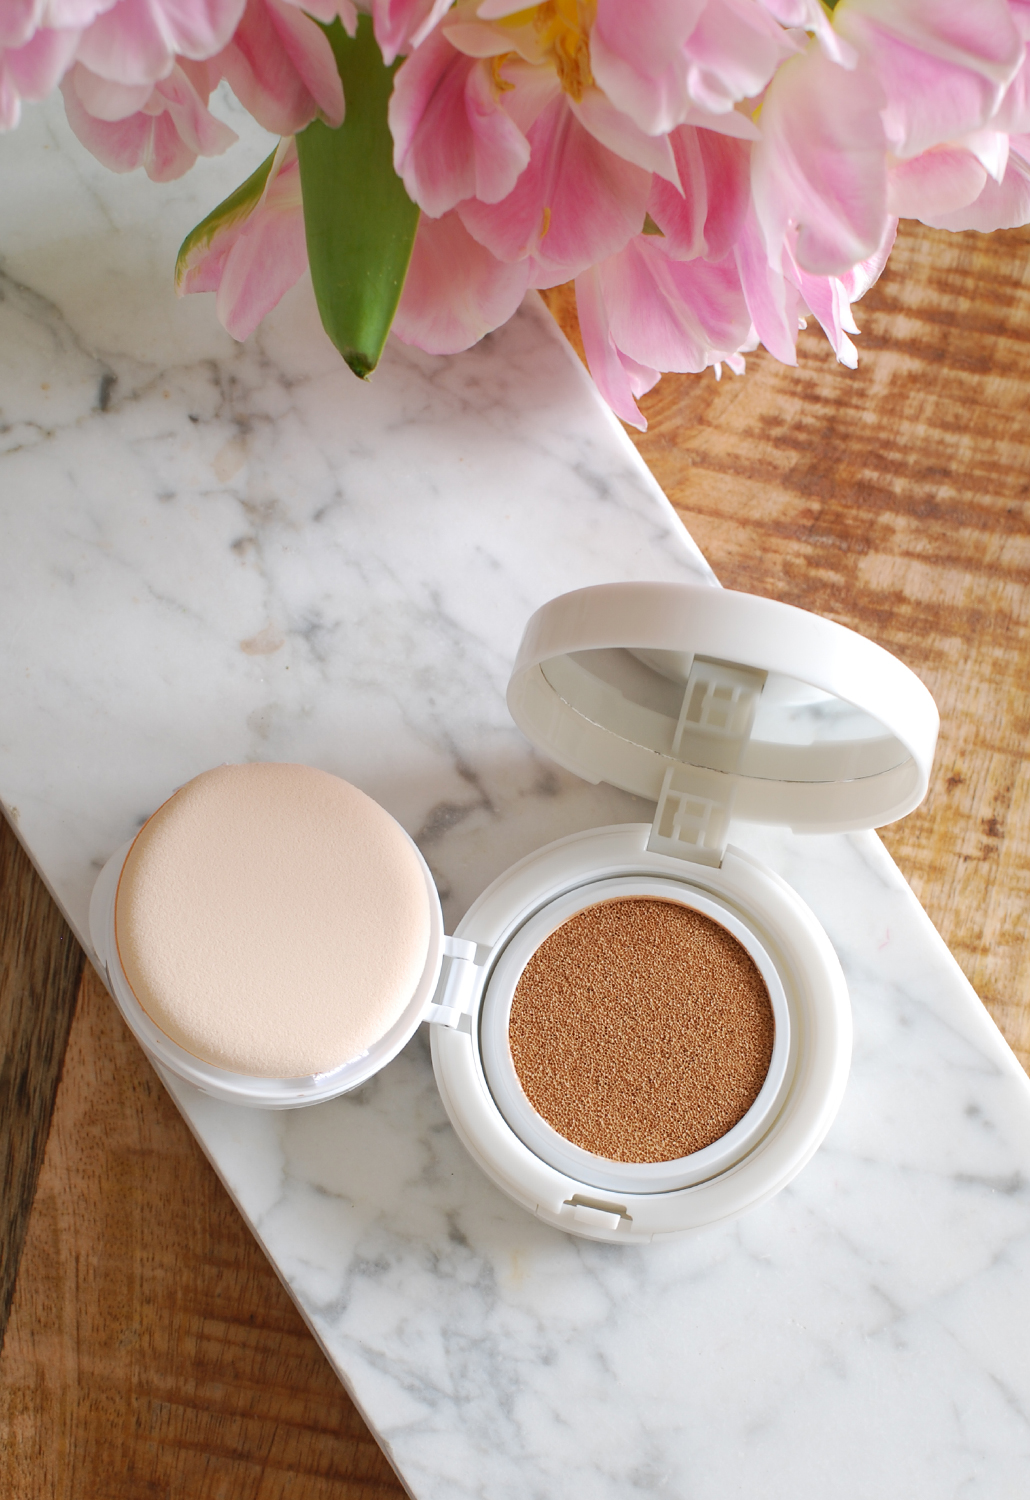 Pure Light Cushion Foundation Yves Rocher beige 200 light foundation review lifestyle by linda